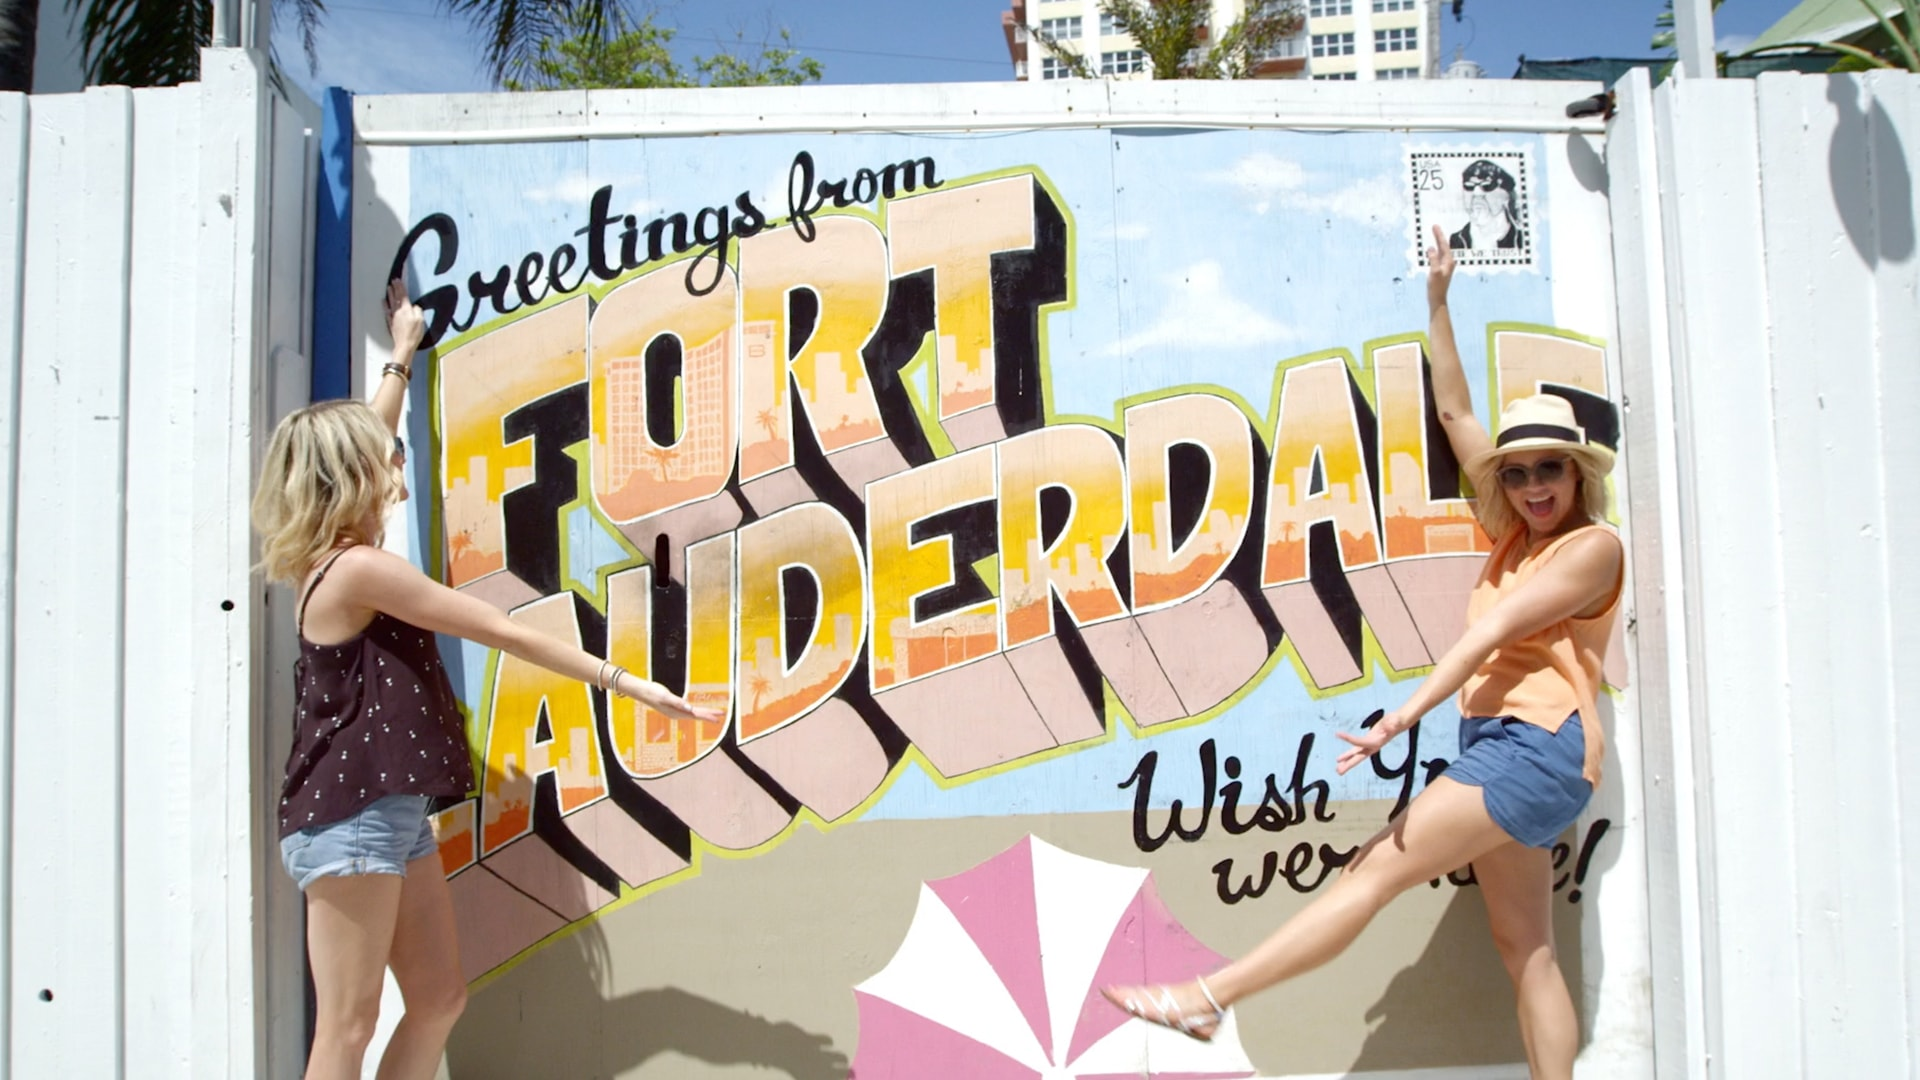 Two white women at Ft Lauderdale postcard mural - a still taken from an influencer marketing video.